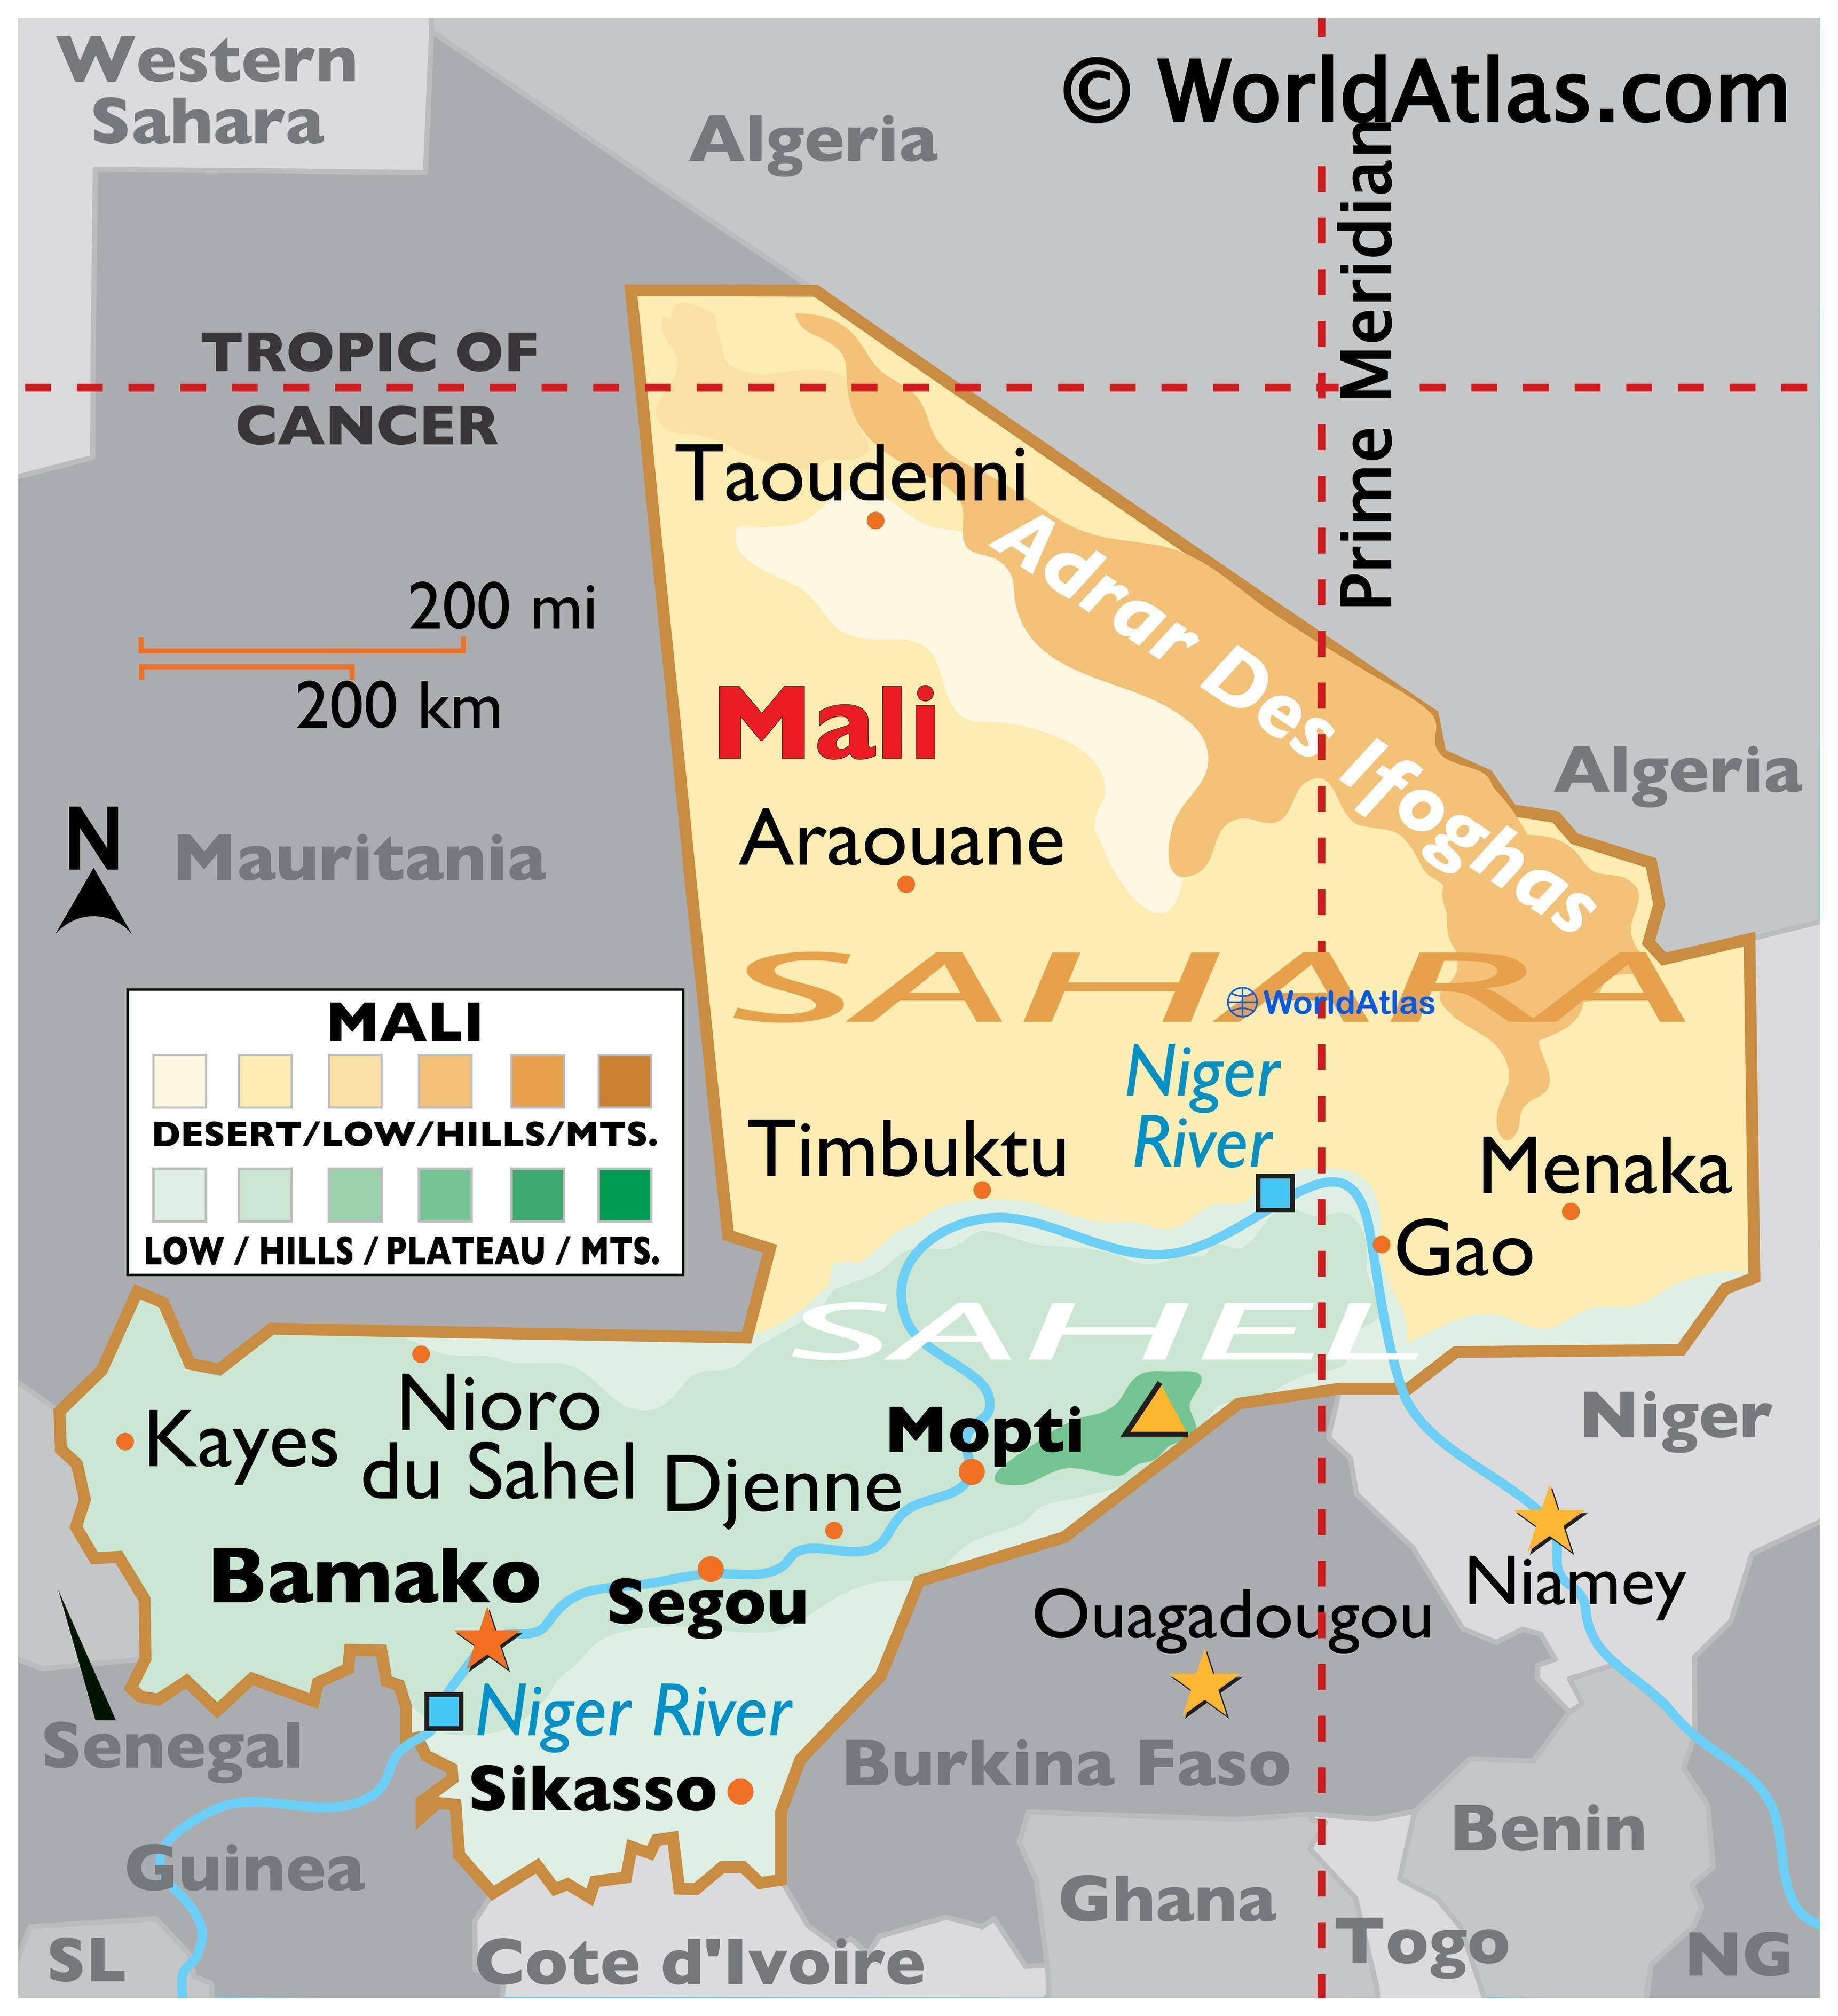 Physical Map of Mali with state boundaries, major rivers, deserts, highest peak, important cities, and more.